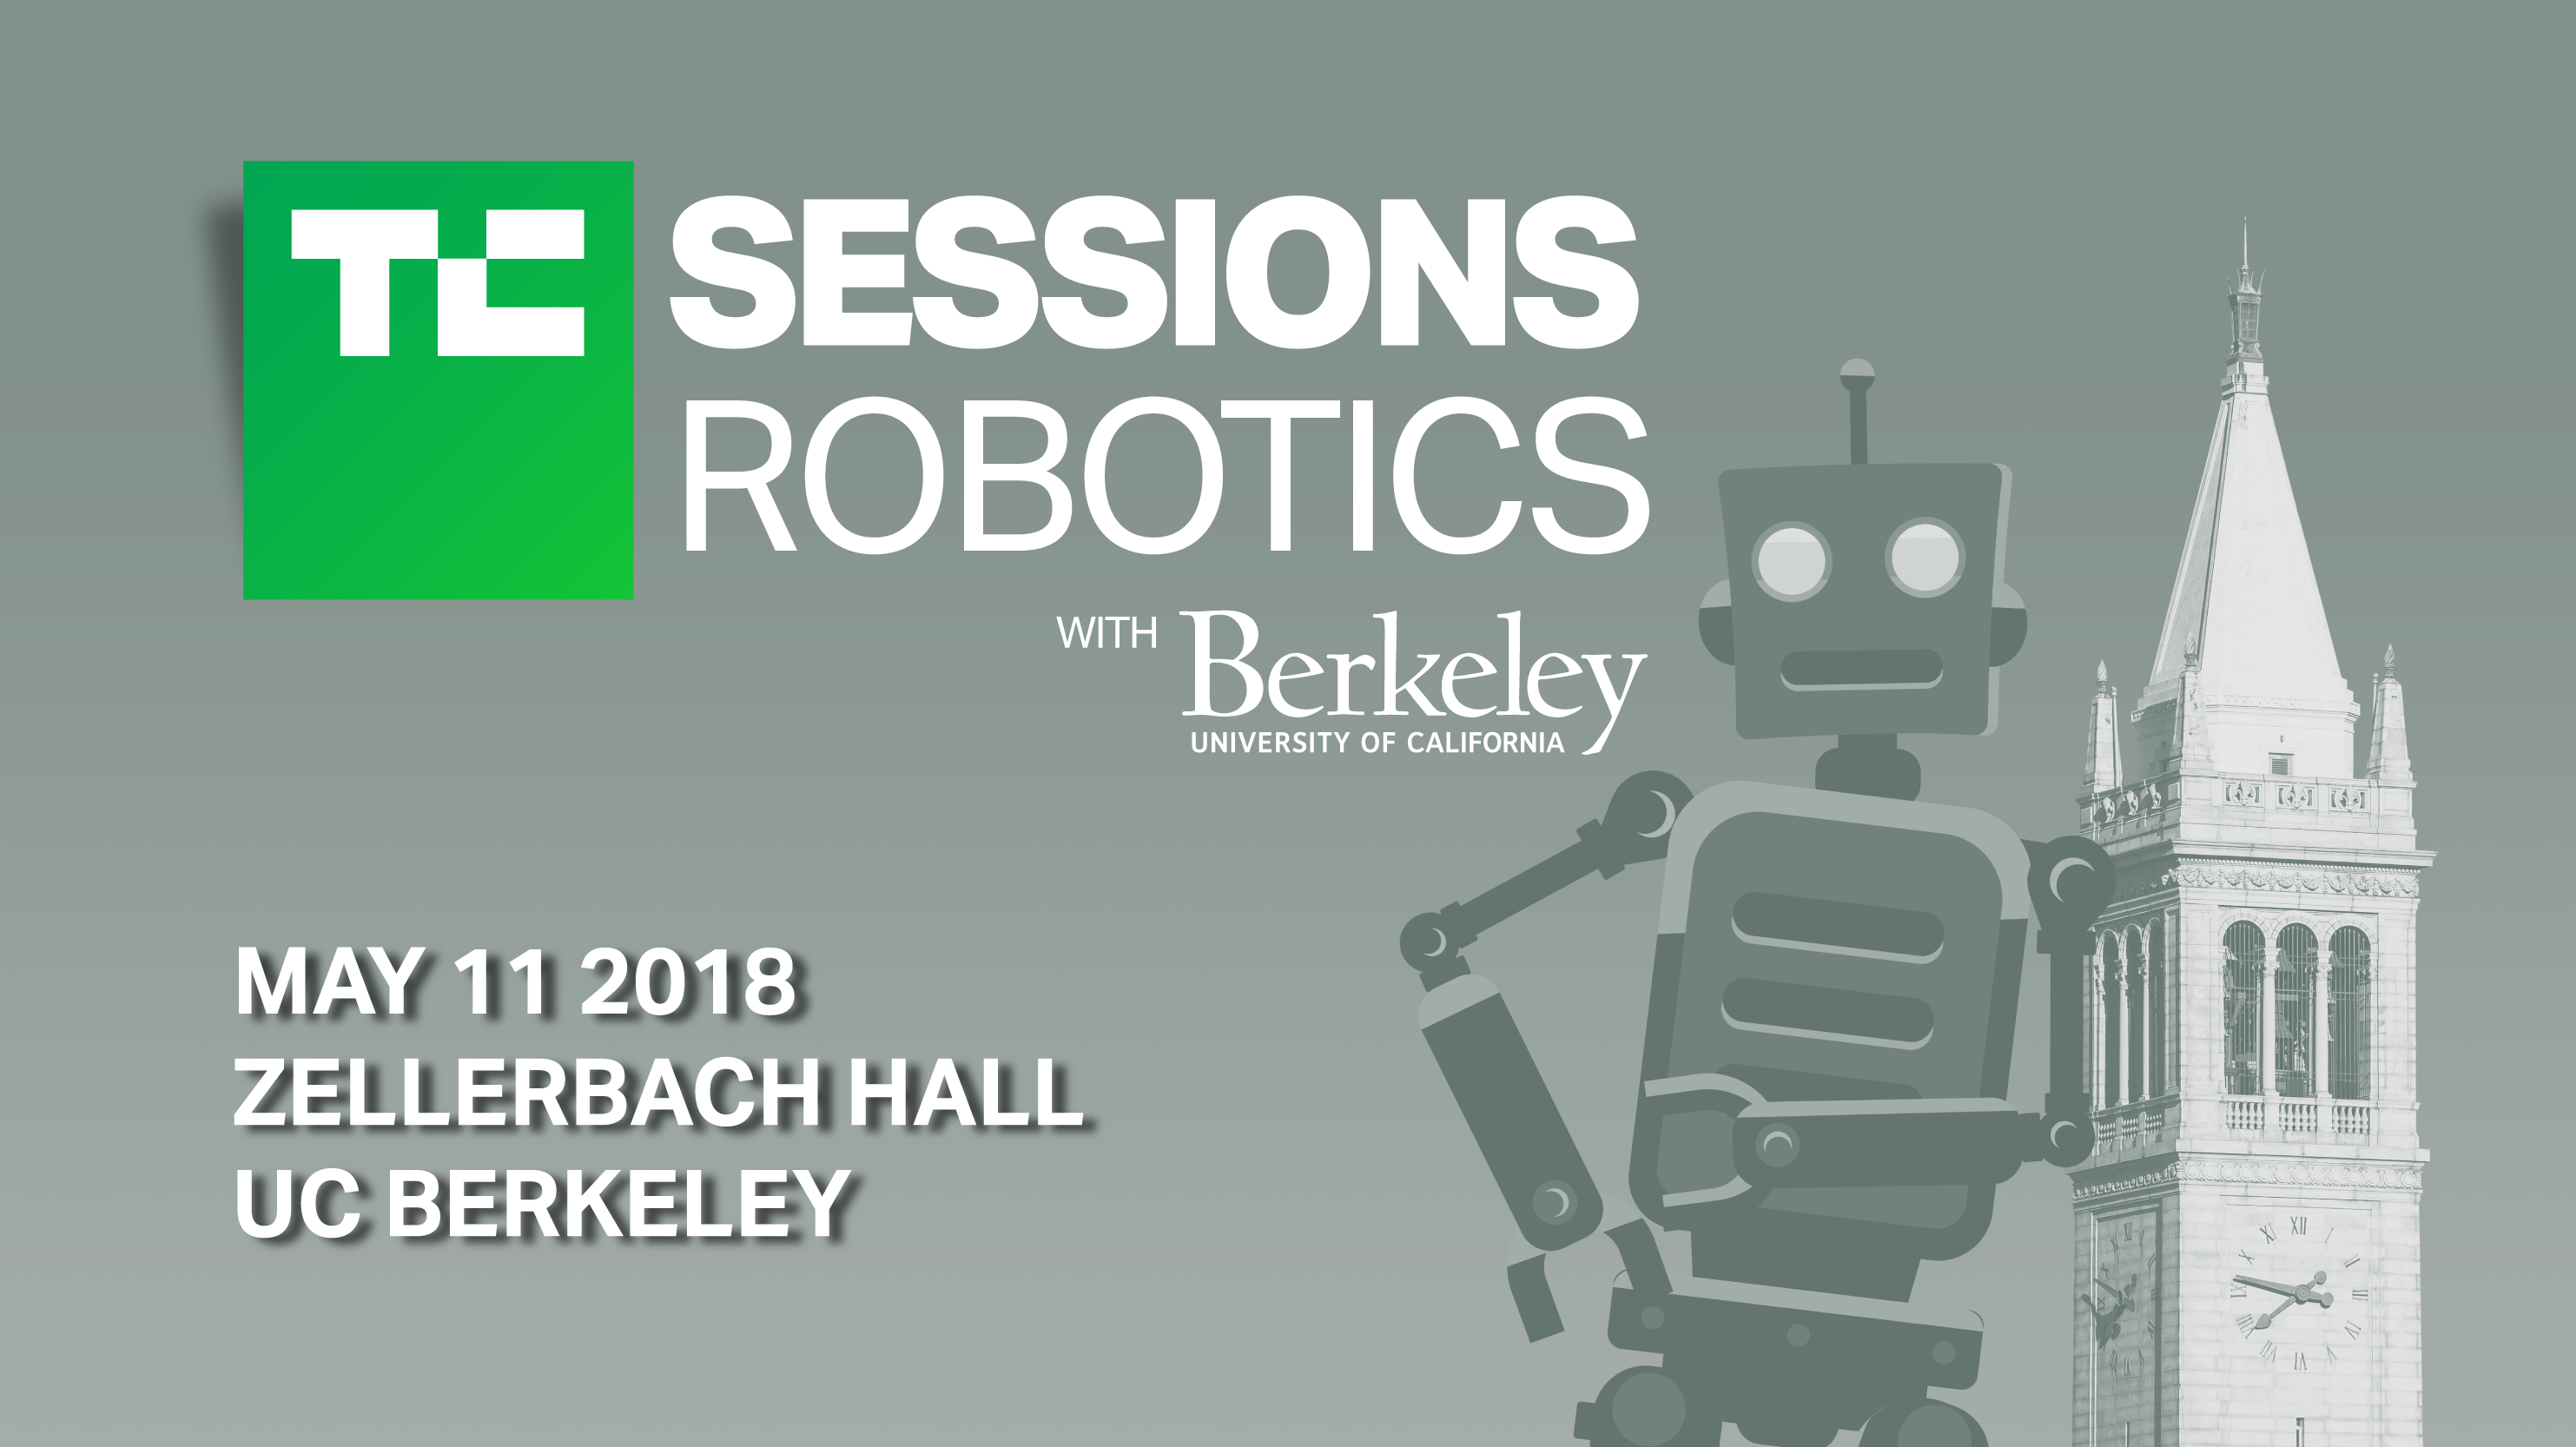 Laura Tyson will be speaking at TC Sessions: Robotics May 11 at UC Berkeley